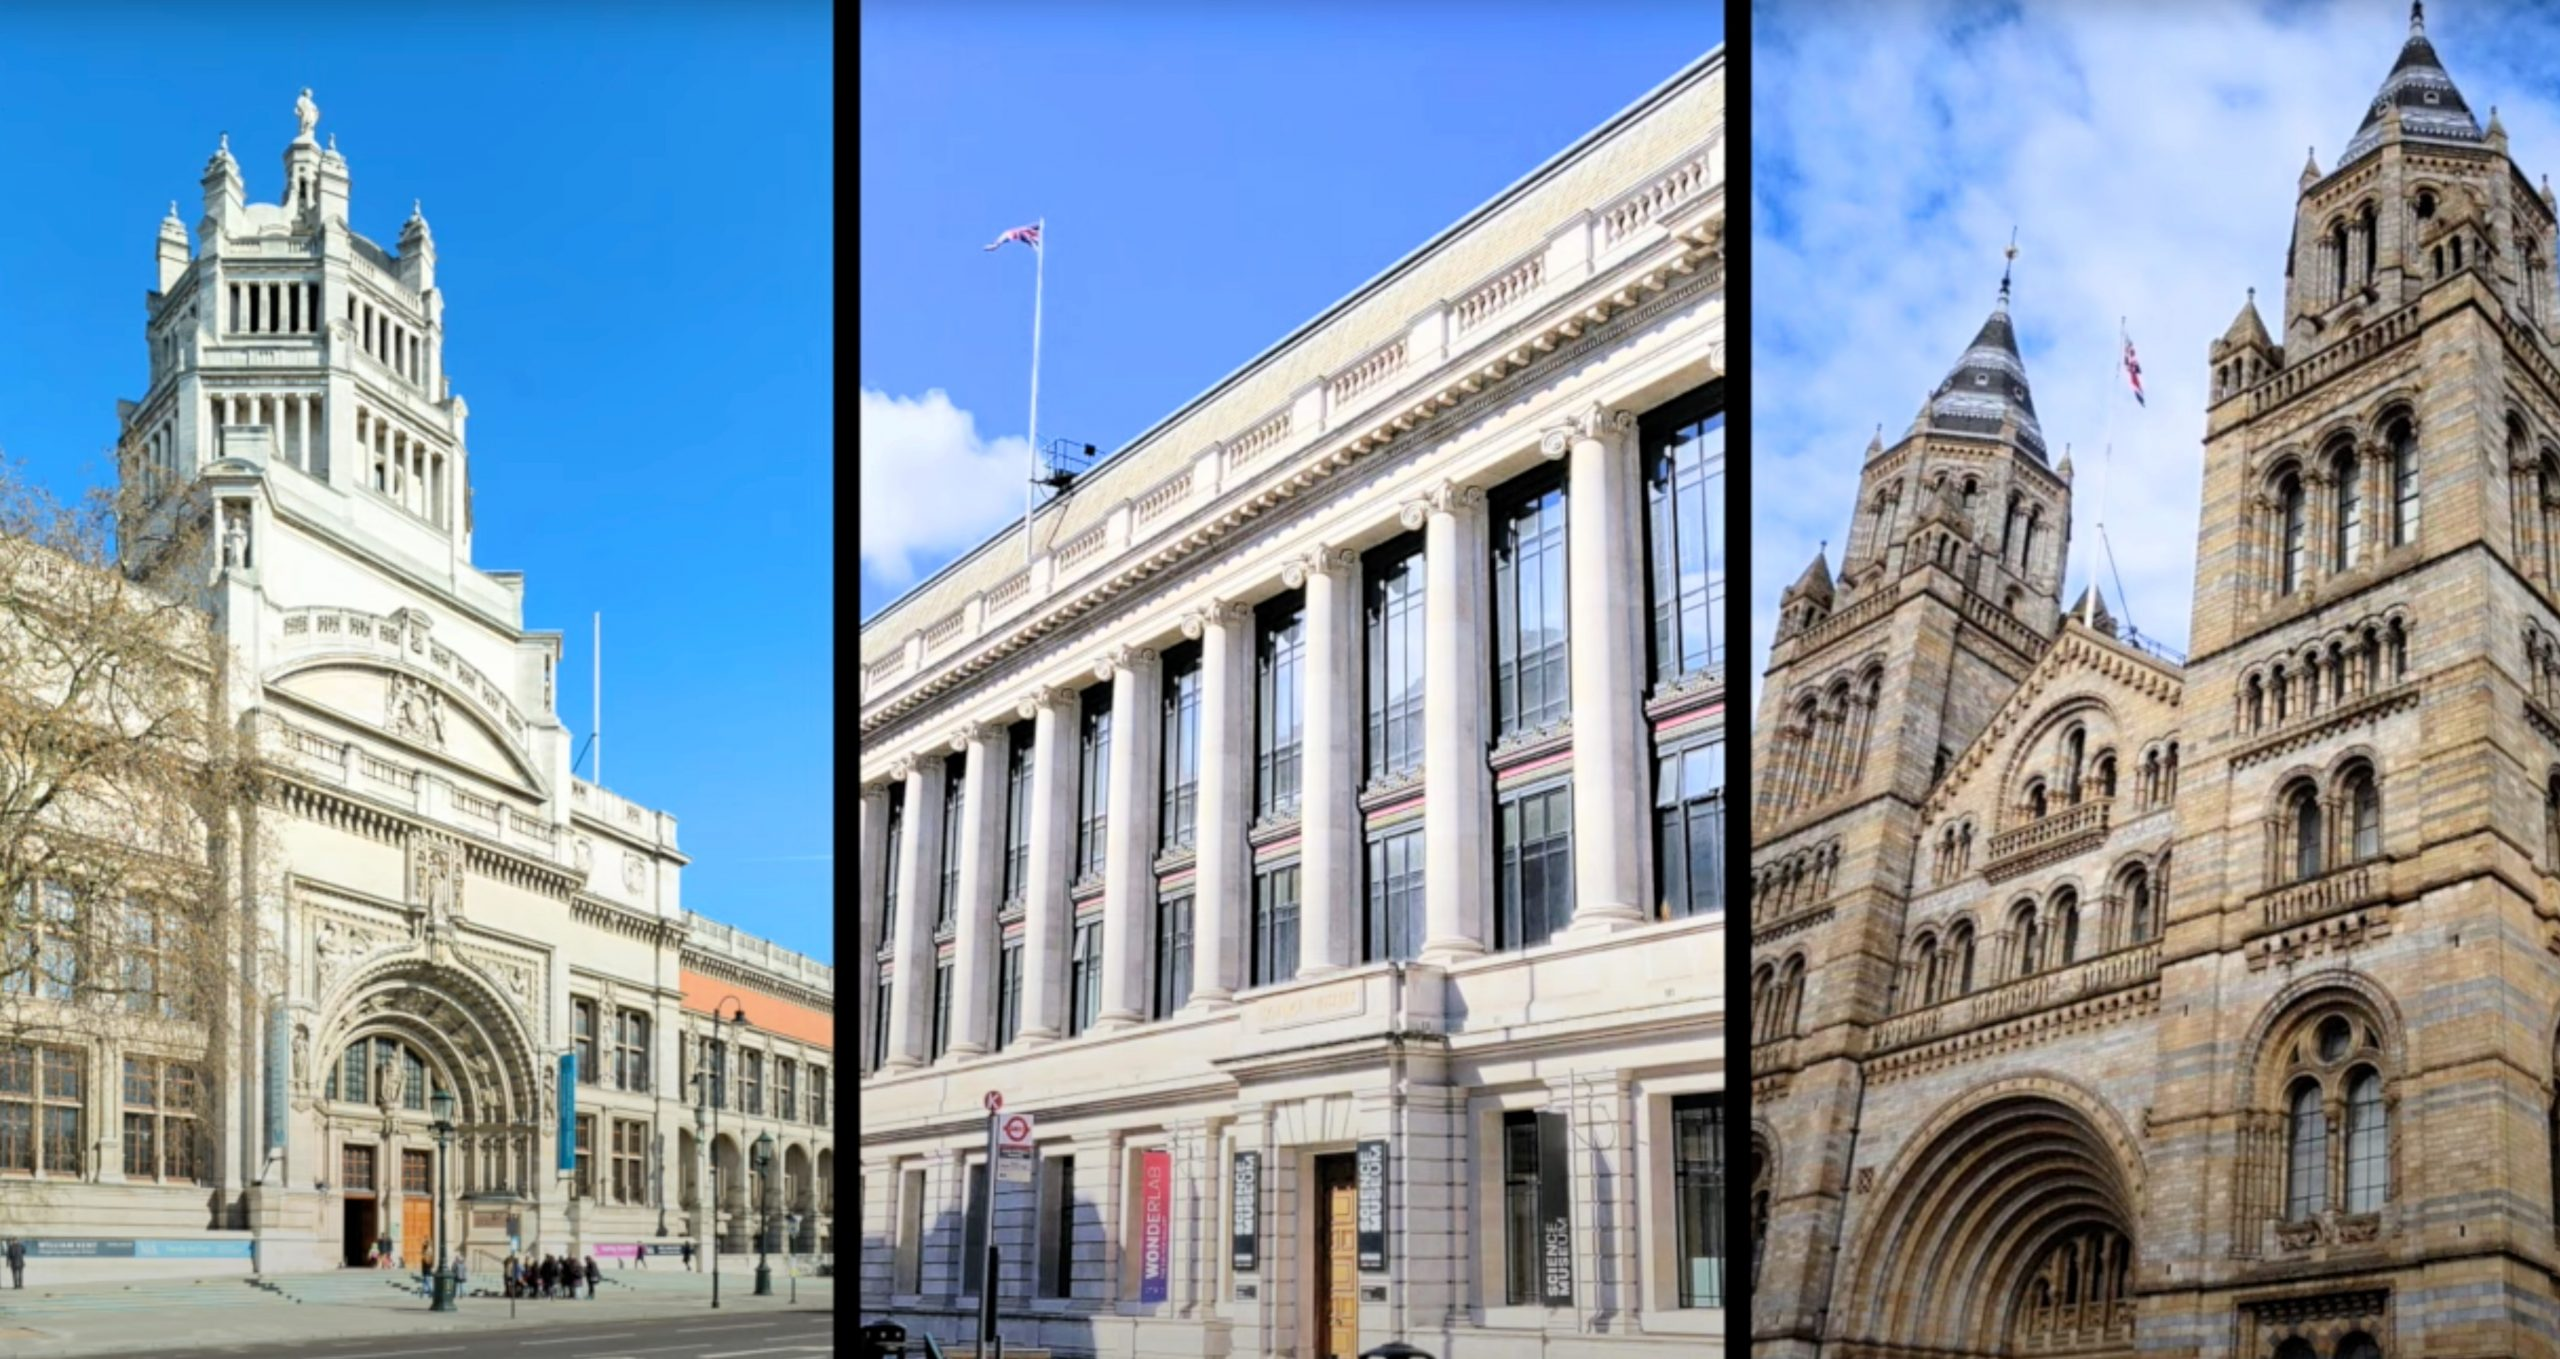 Museums founded by the Great Exhibition